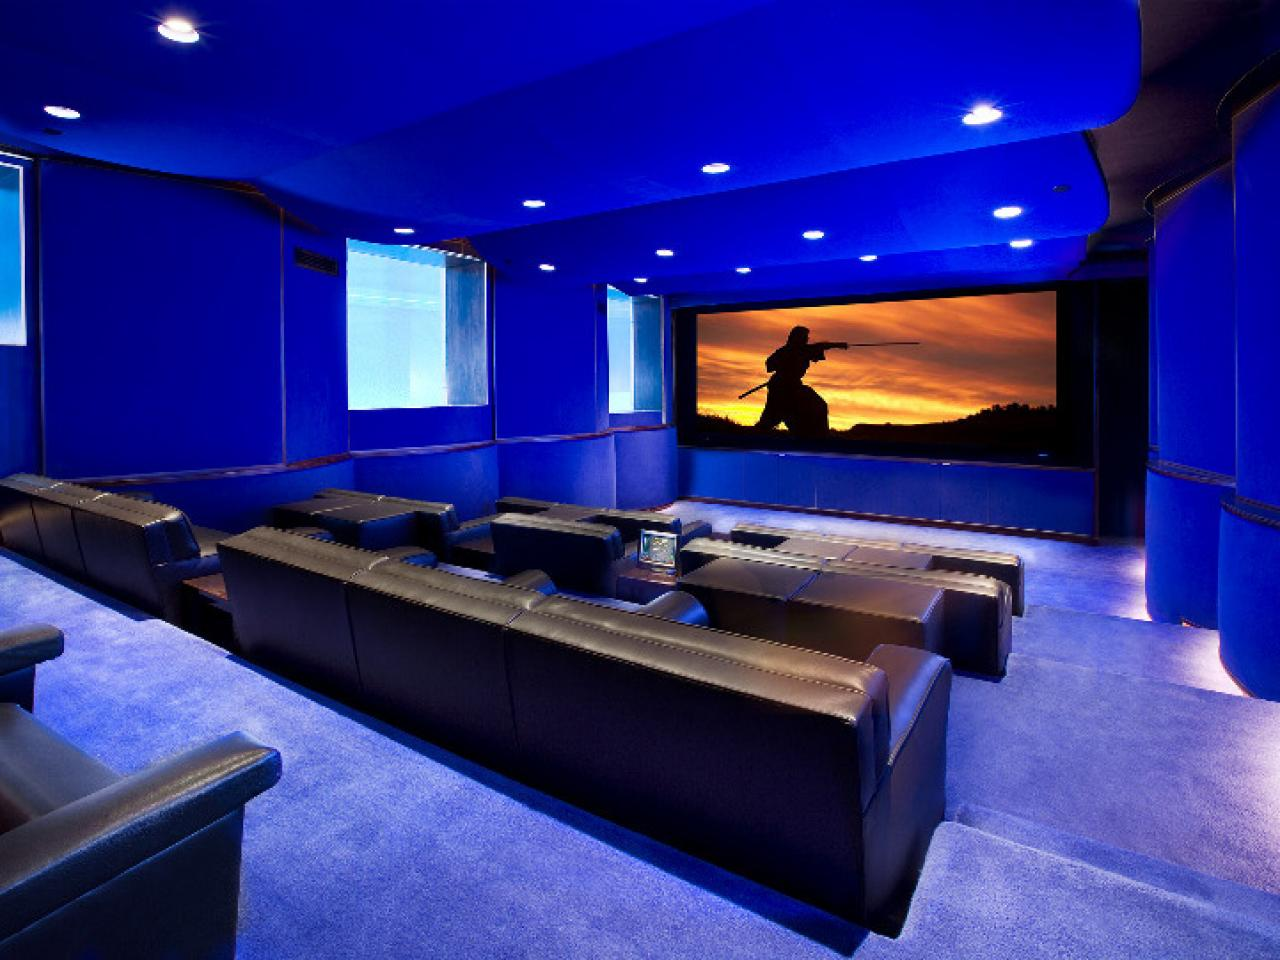 Home theater seating ideas pictures options tips ideas hgtv Home theater design ideas on a budget